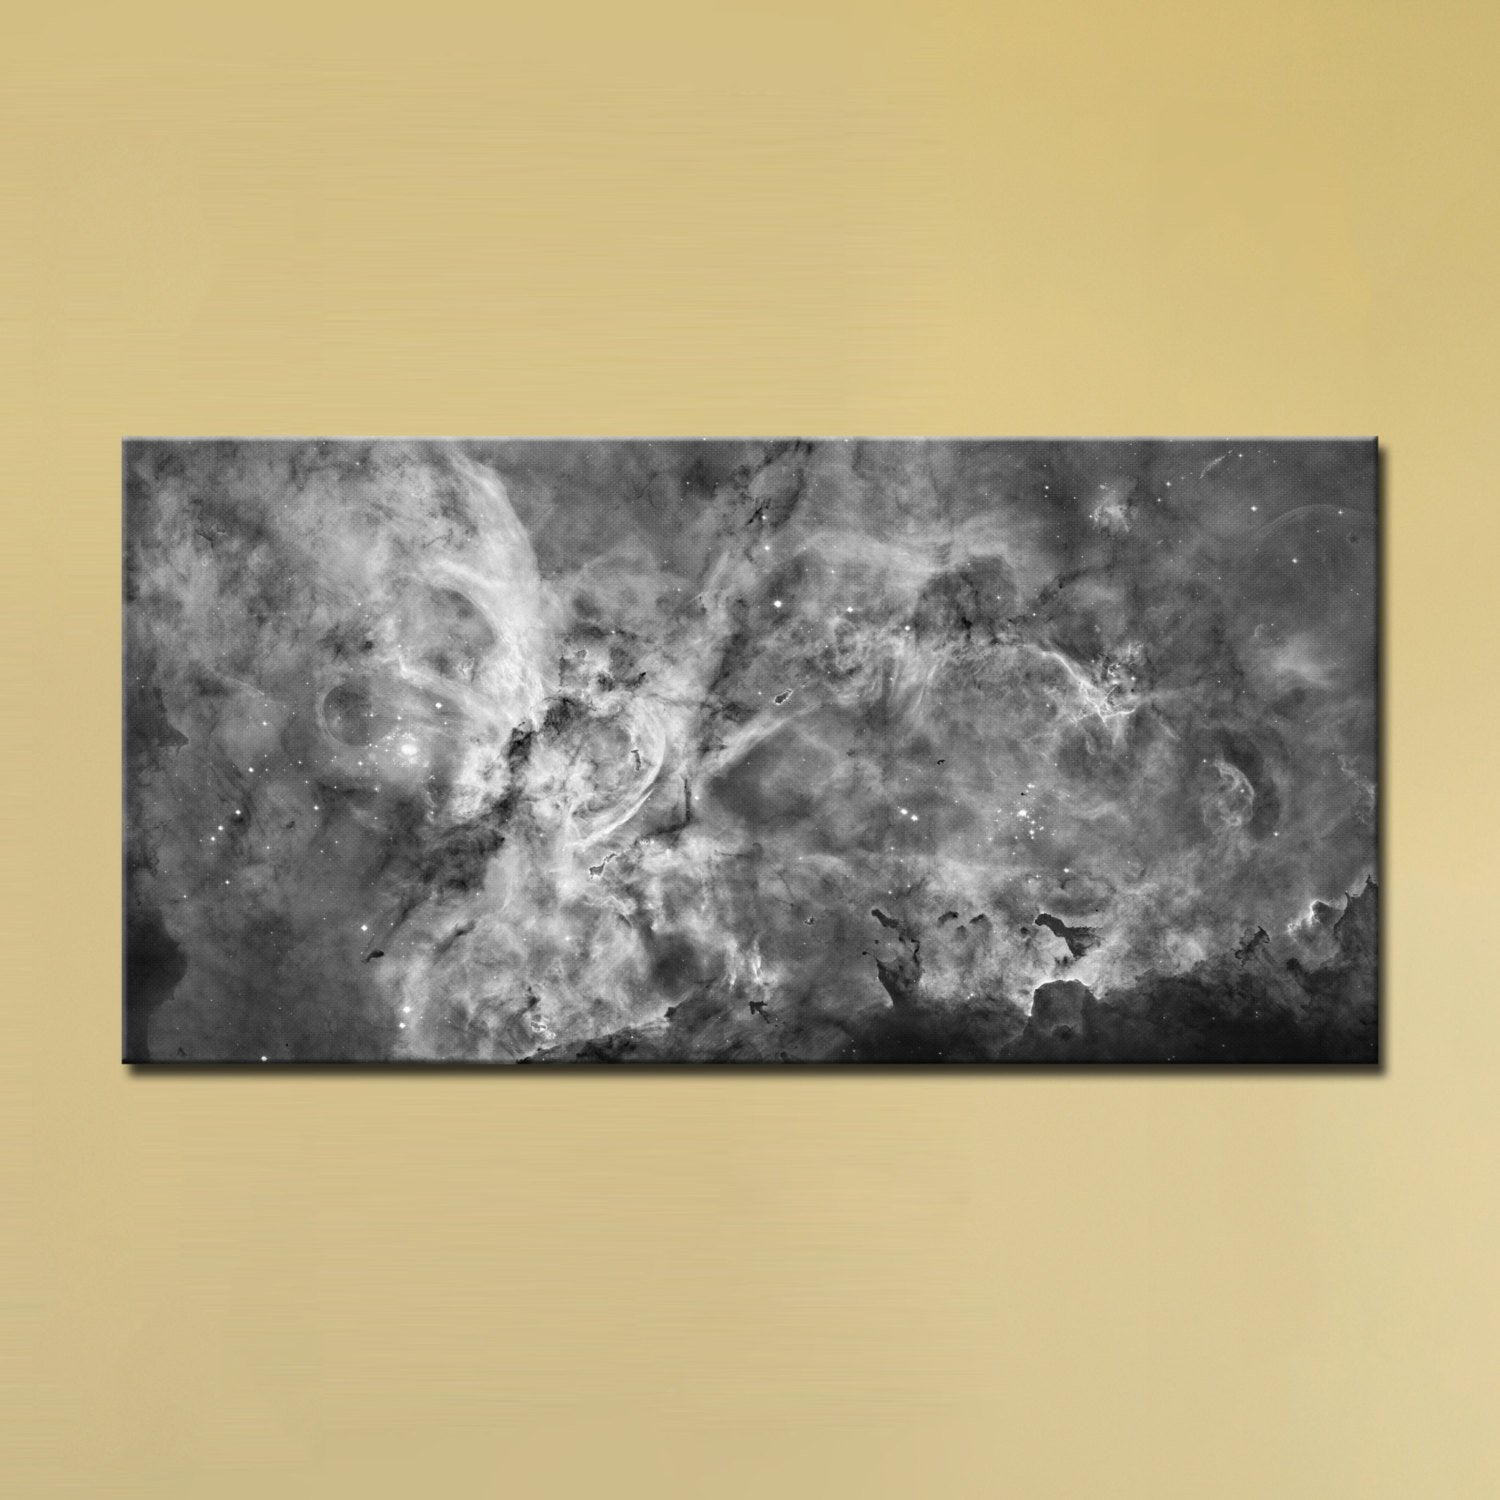 "The Carina Nebula, Star Birth in the Extreme (Grayscale) (24"" x 36"") - Canvas Wrap Print"